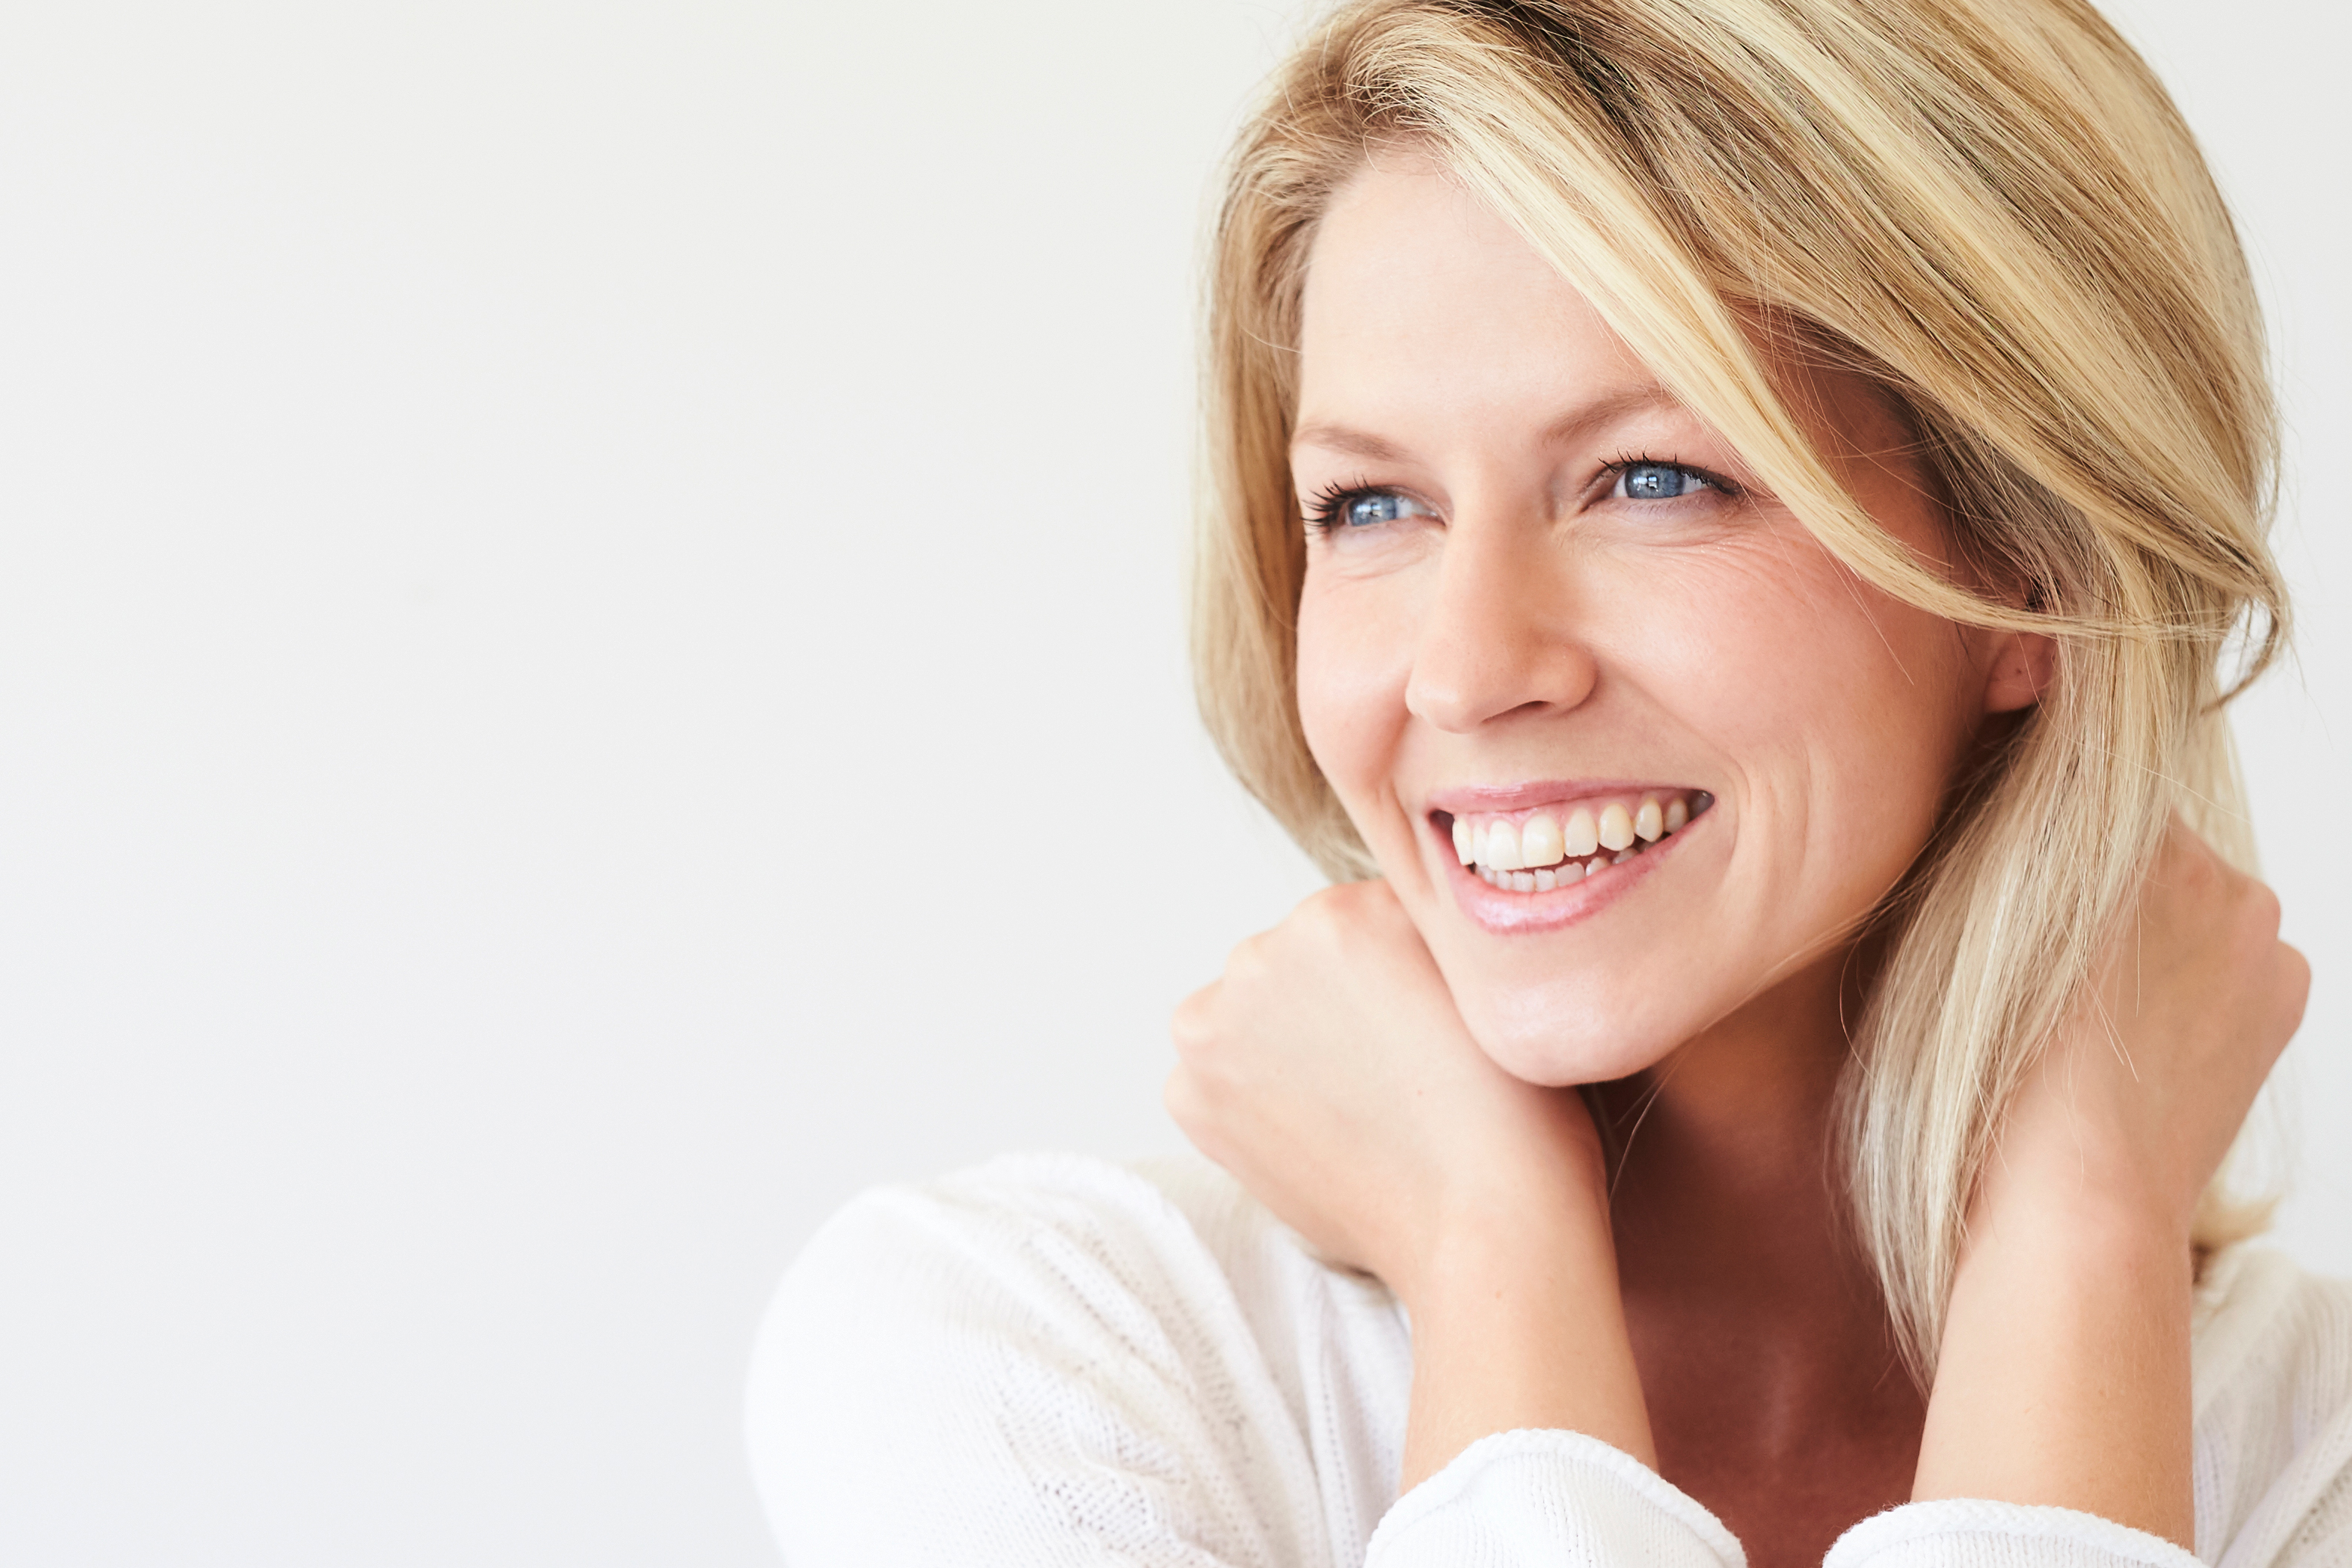 Gum Contouring: Changing the shape of gum Strictly Cosmetic or Medically Necessary?